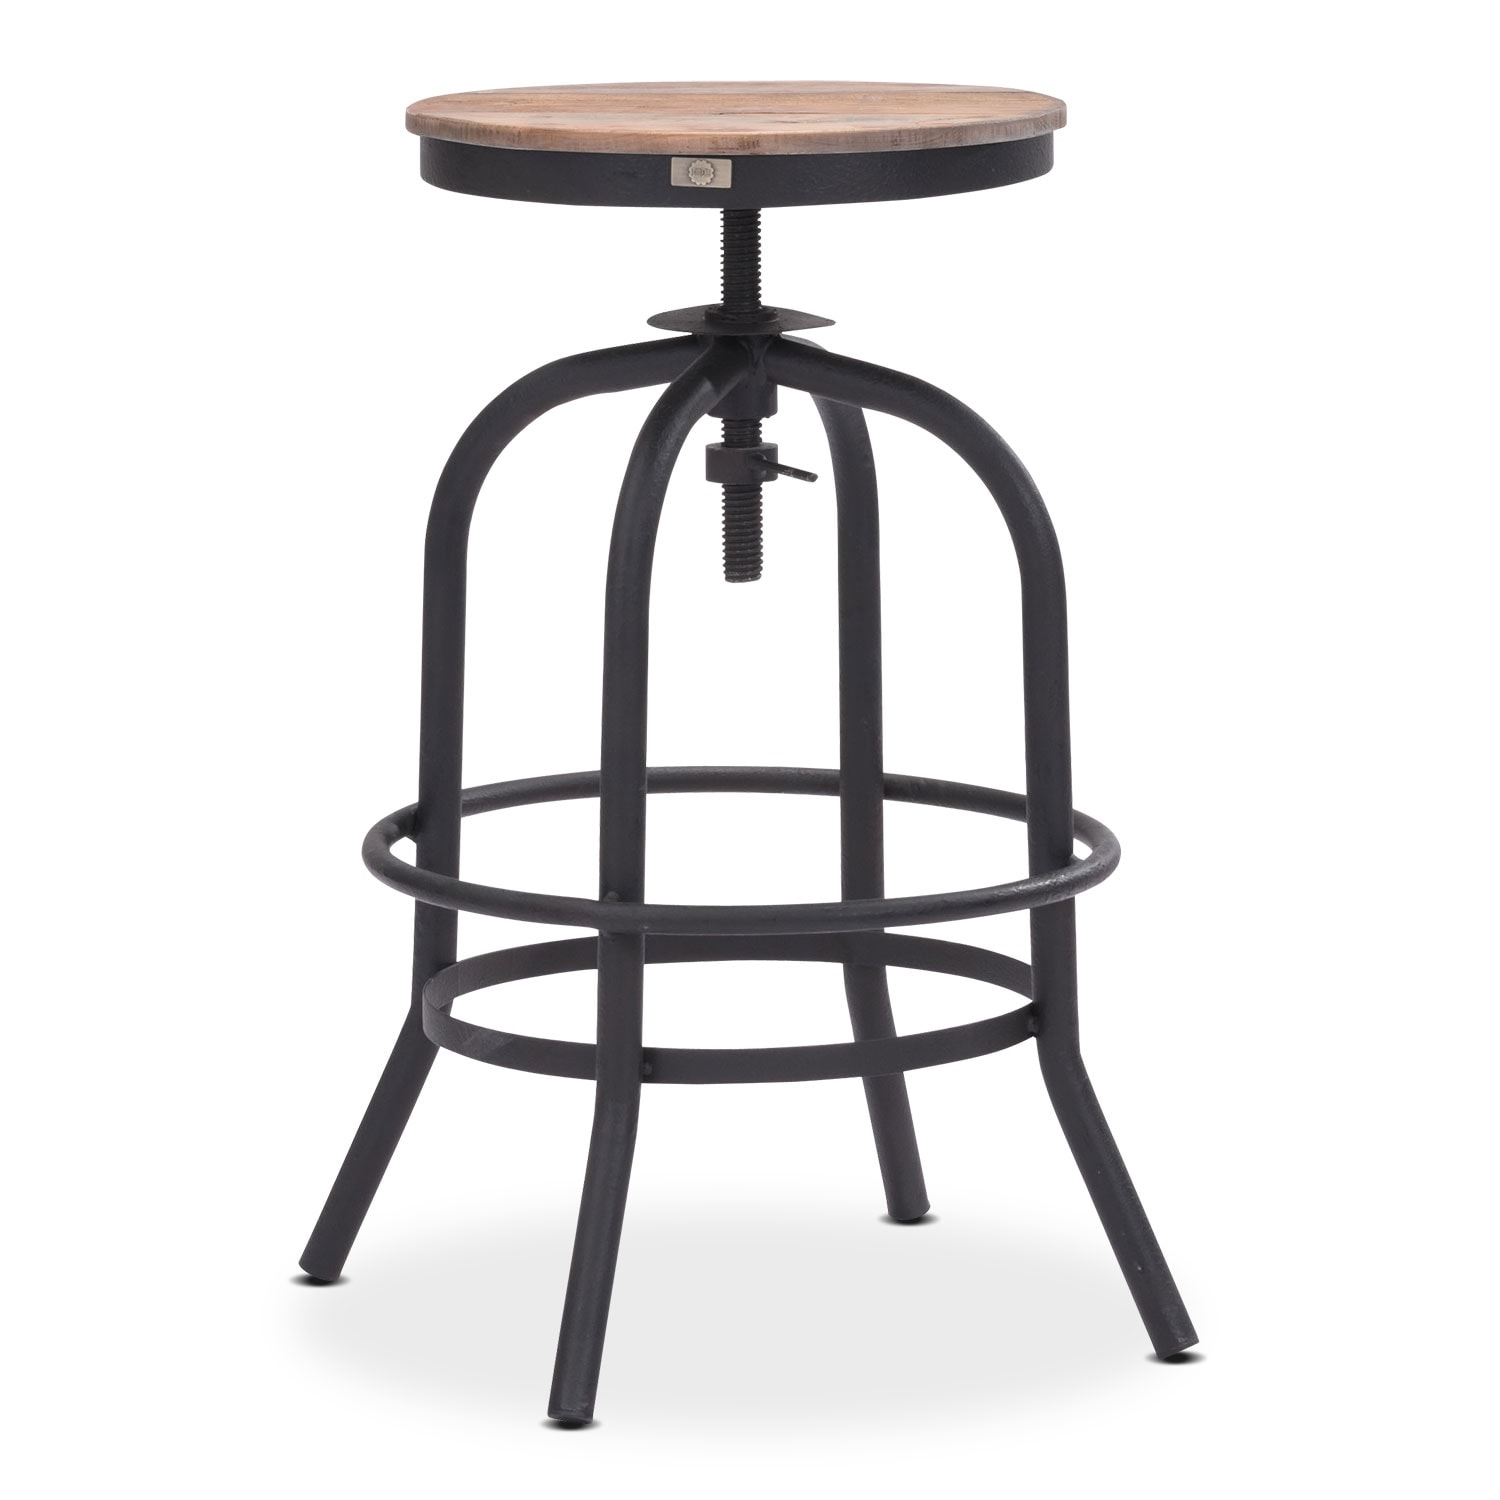 Elston Adjustable Backless Counter-Height Stool - Antiqued Black